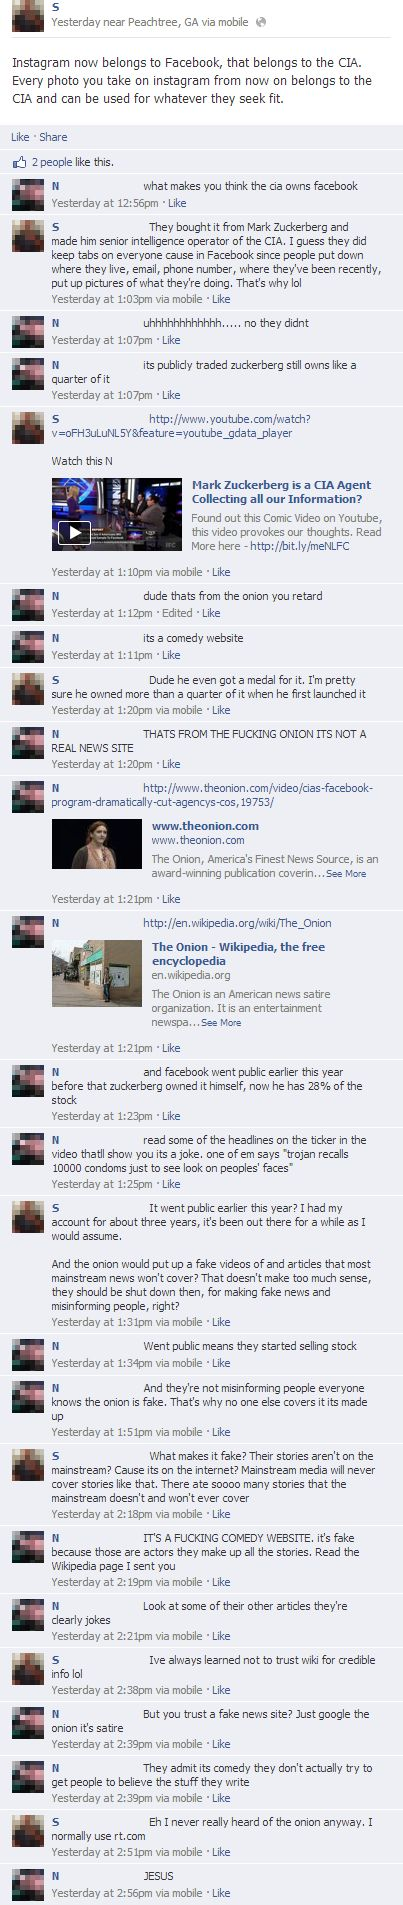 "one person trying to explain to another that ""the onion"" is a fake news outlet on facebook."